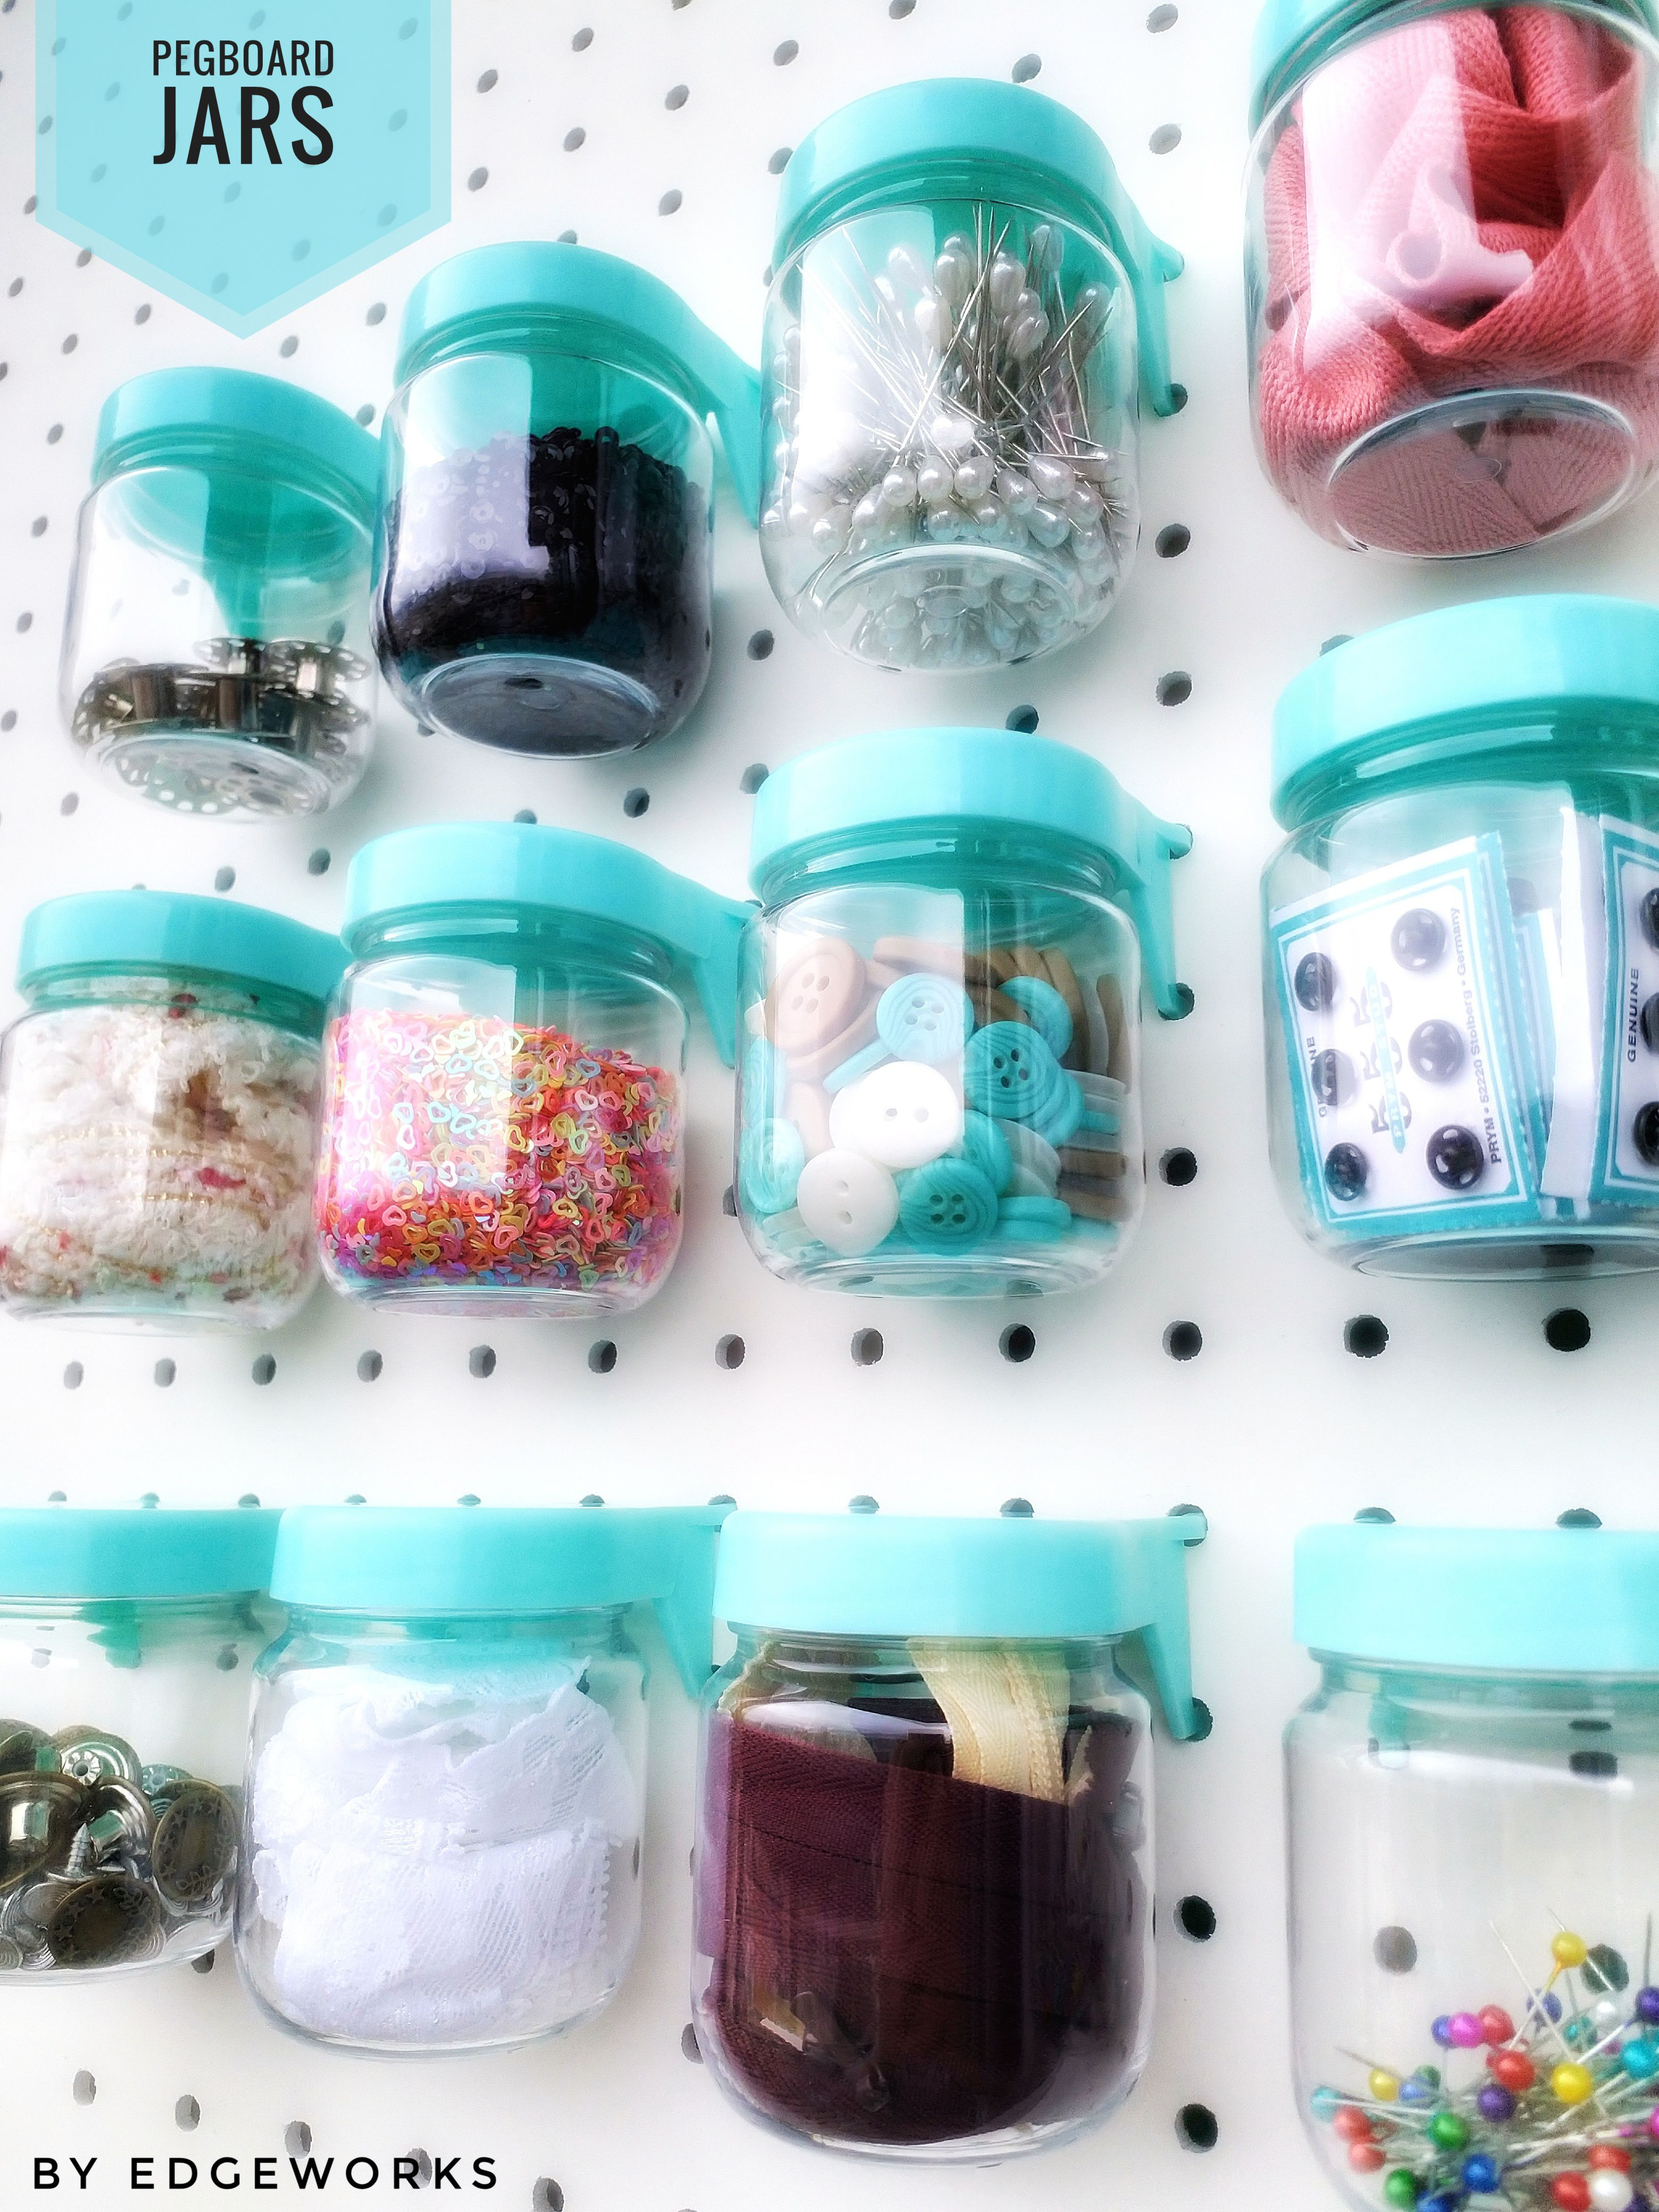 Pegboard Organization Jars Store All Of Your Sewing Quilting Or Crafting Accessories Peg Board Sewing Jars Craft Room Decor